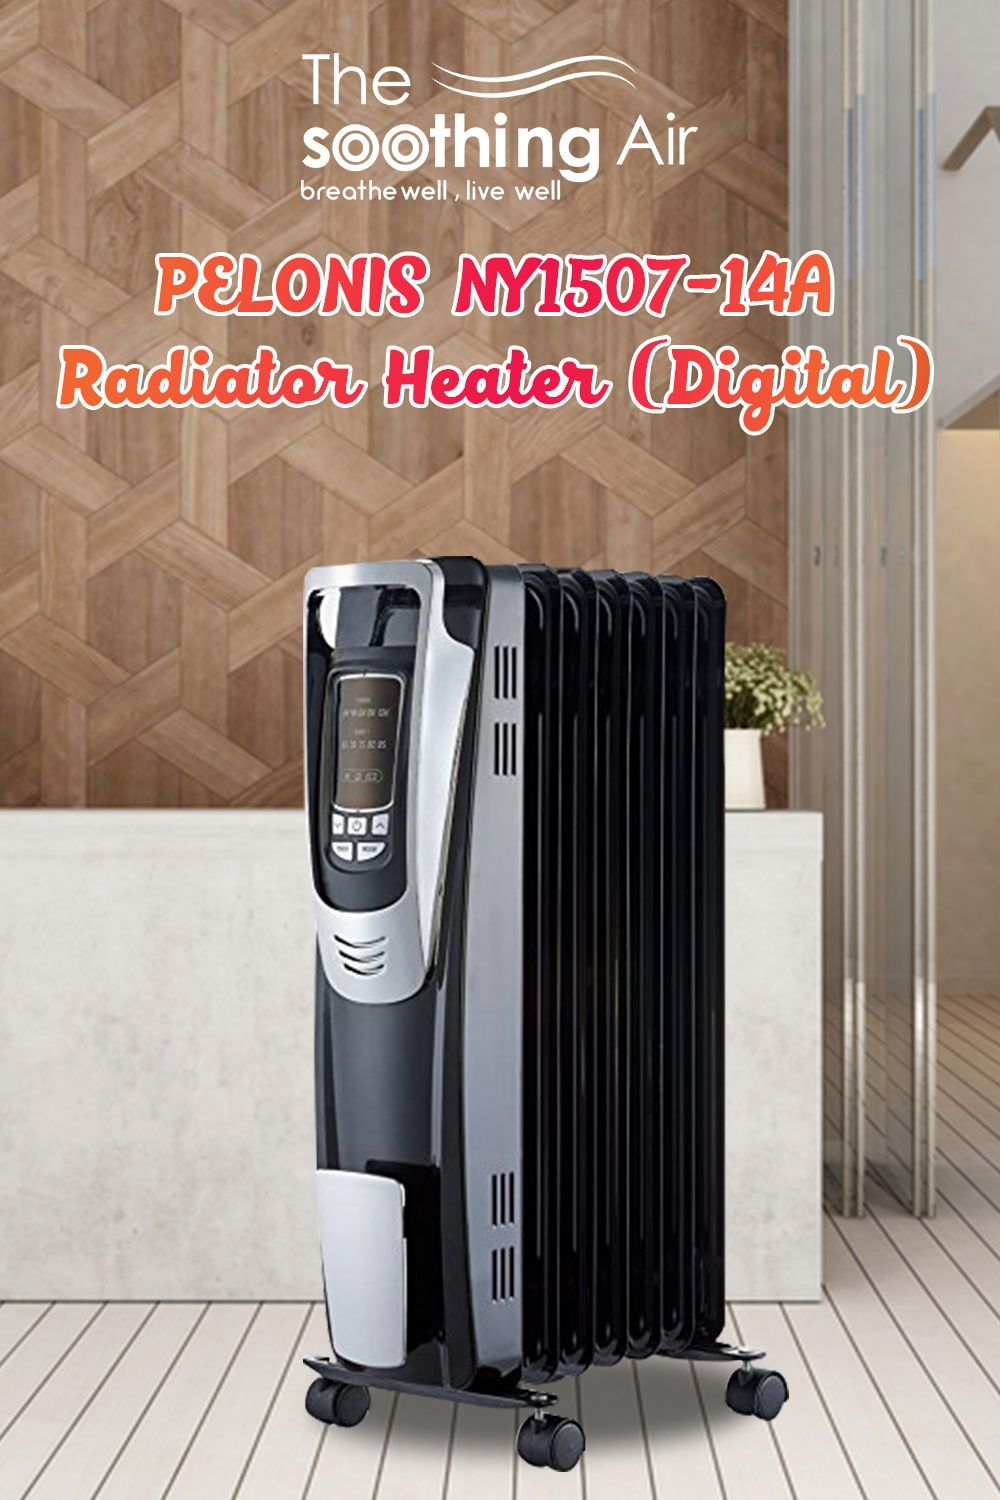 Top 10 Oil Filled Radiant Heaters Feb 2020 Reviews And Buyers Guide Oil Heater Heater Radiator Heater